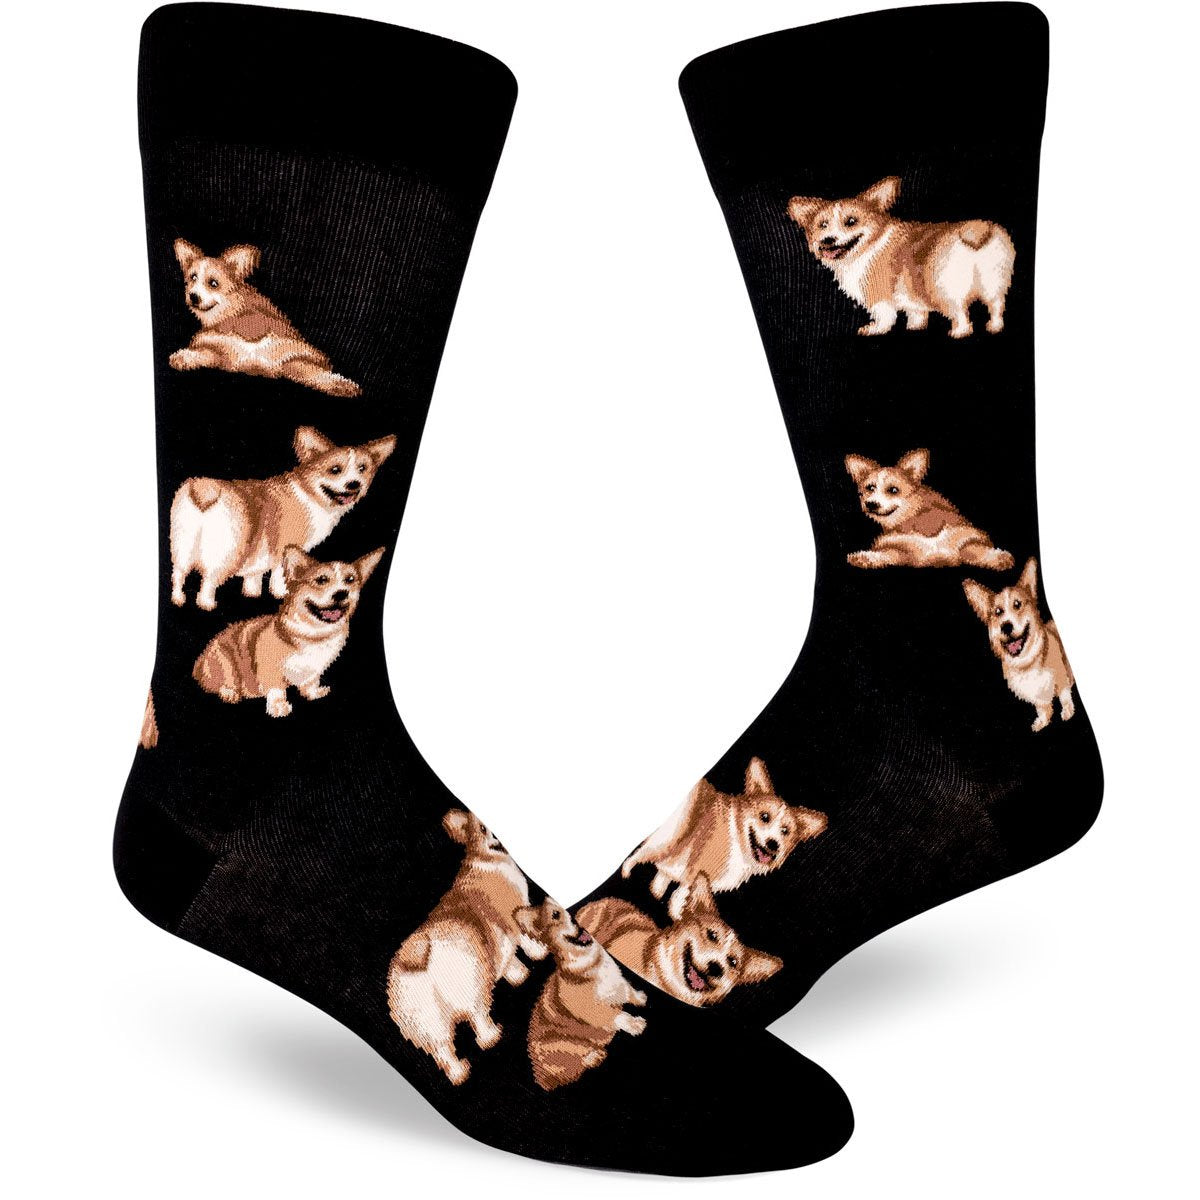 Men's dog socks with corgis and corgi butts